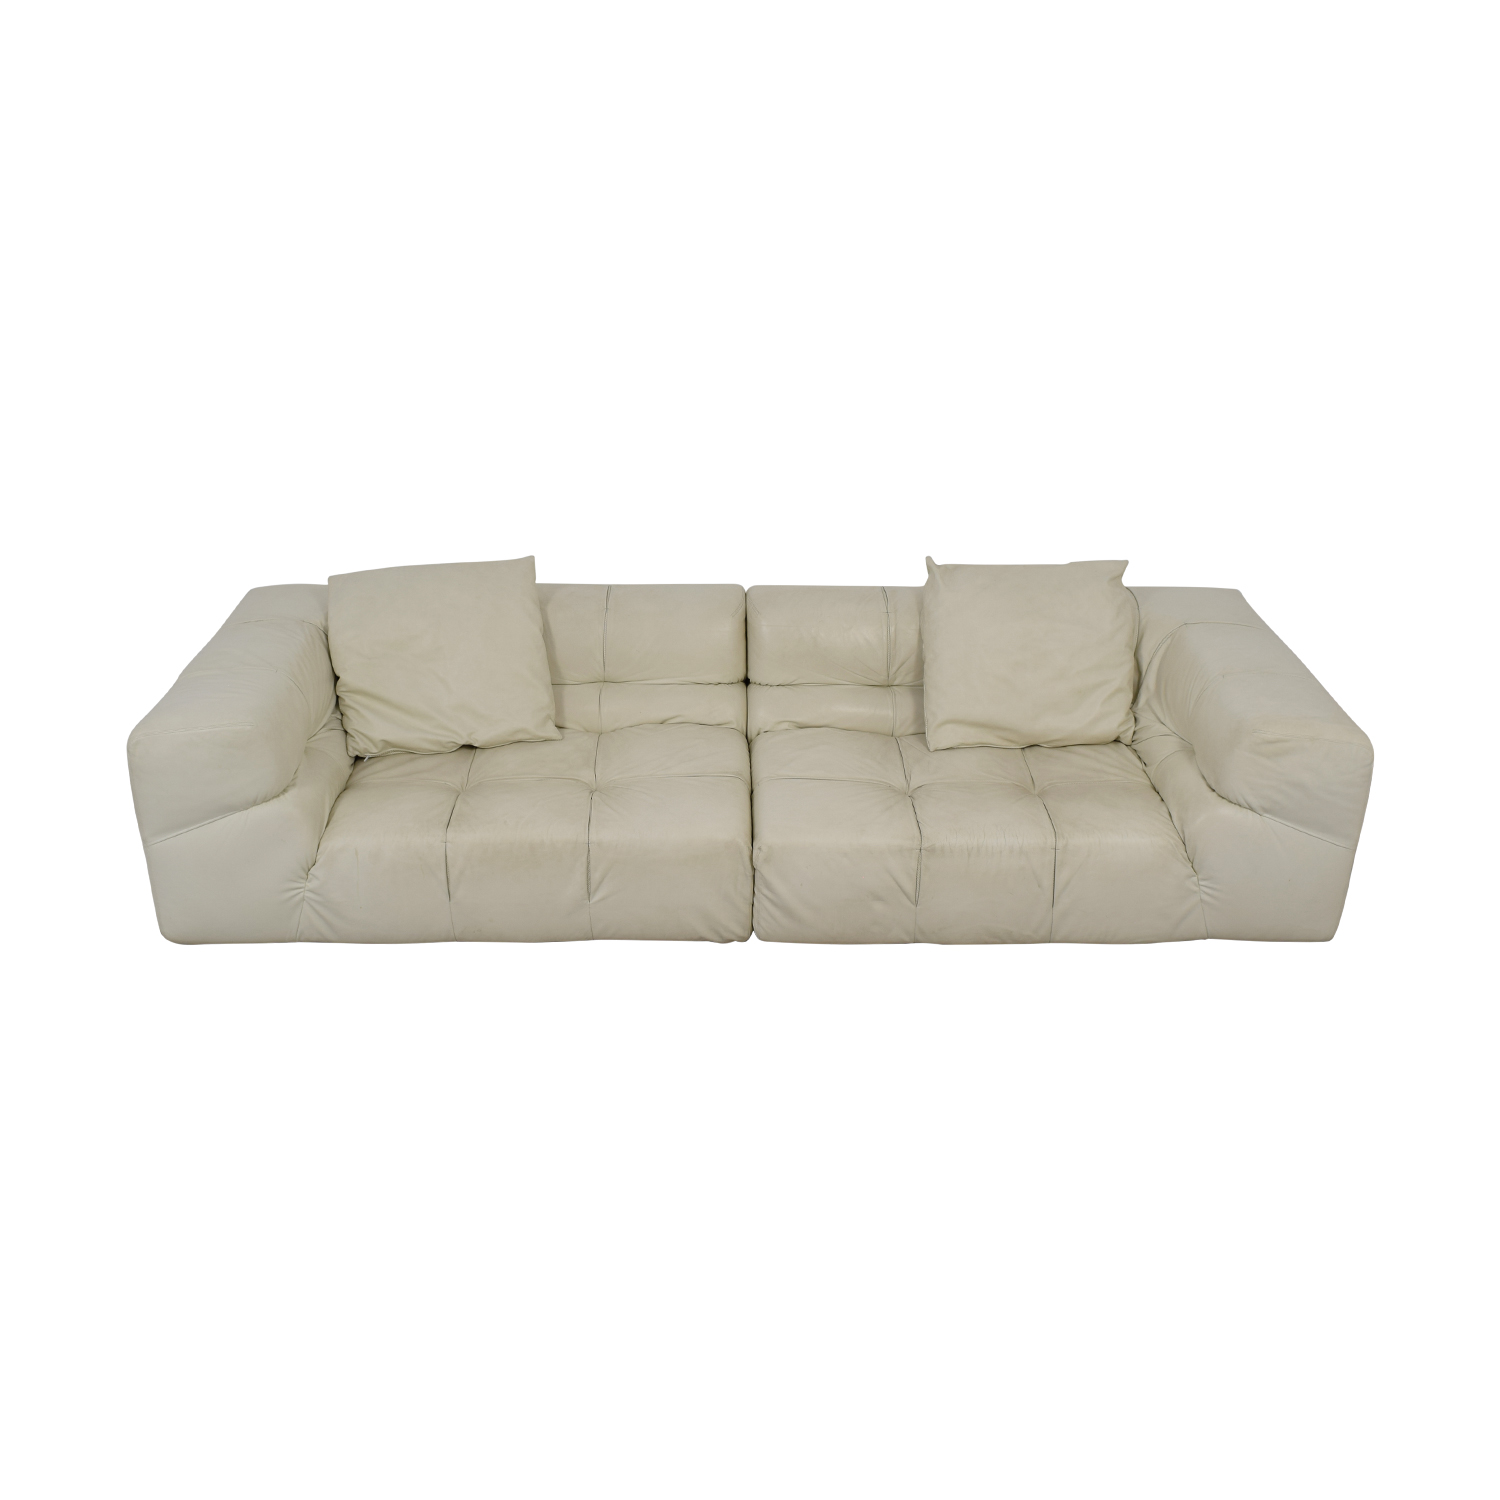 Ligne Roset Ligne Roset White Tufted Leather Couch nyc